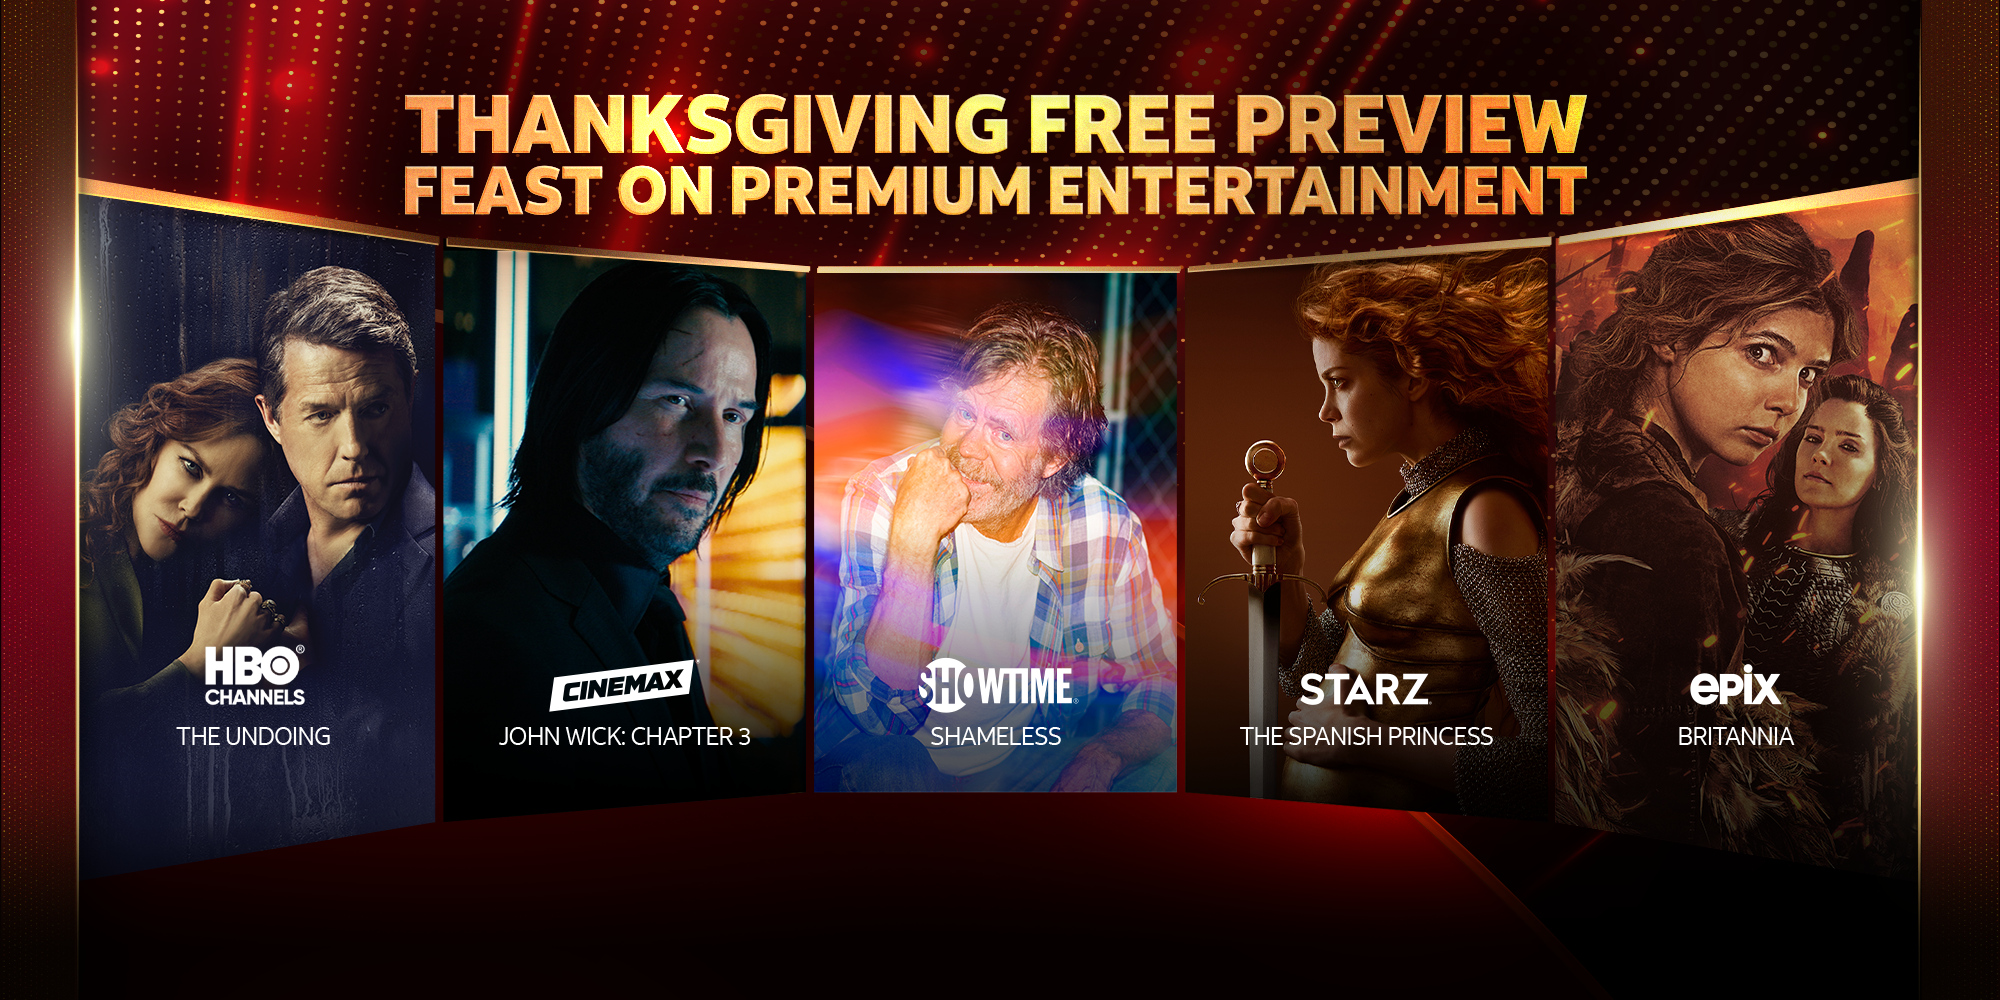 Thanksgiving Free Preview At T Entertainment News